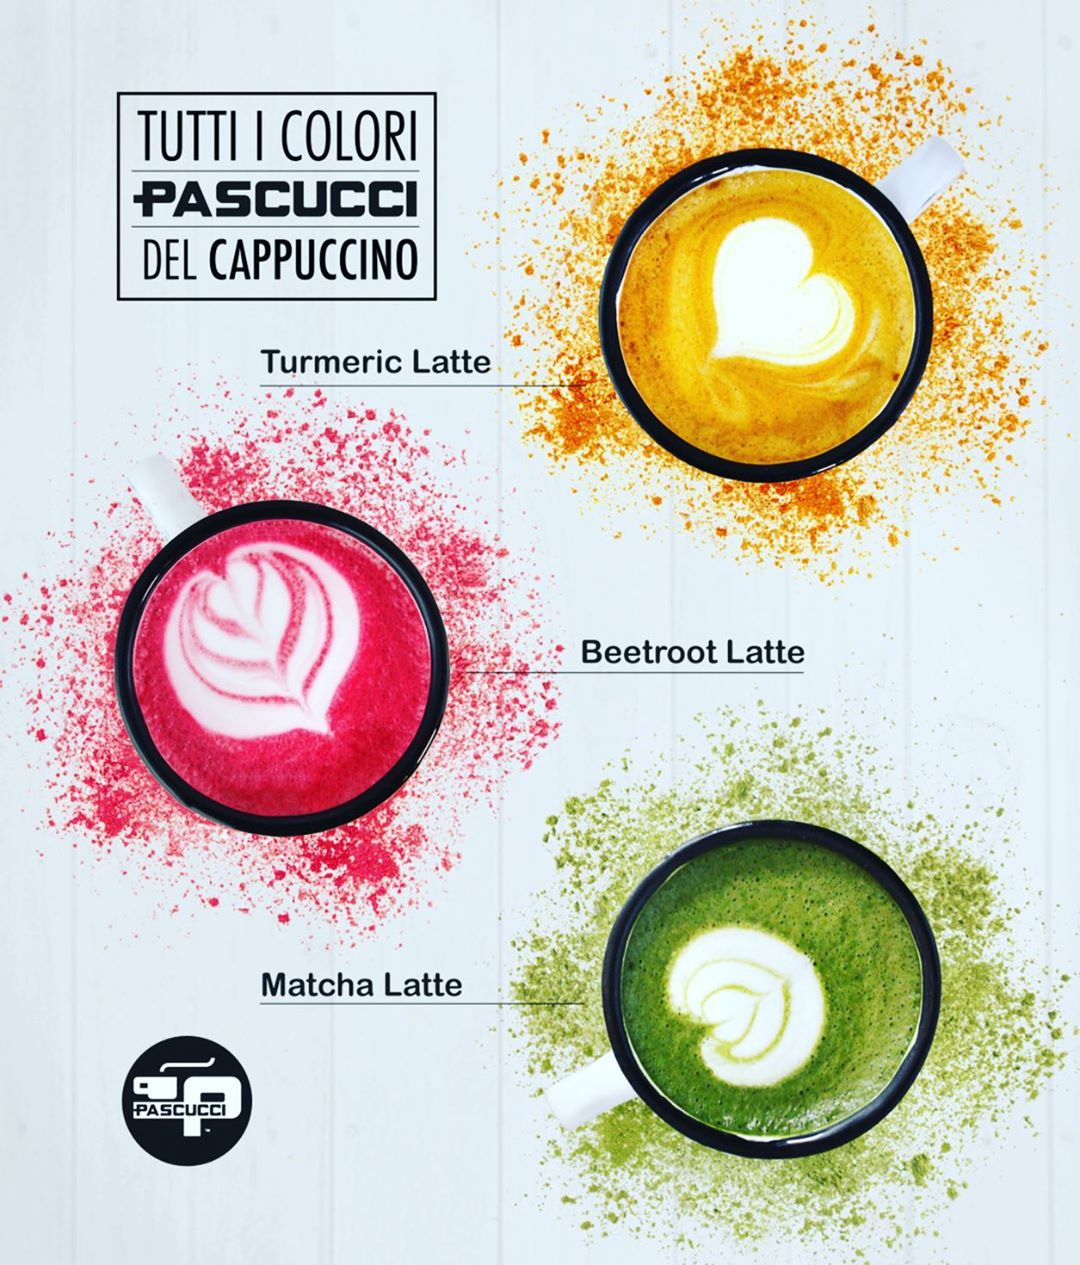 Colors of cappuccino